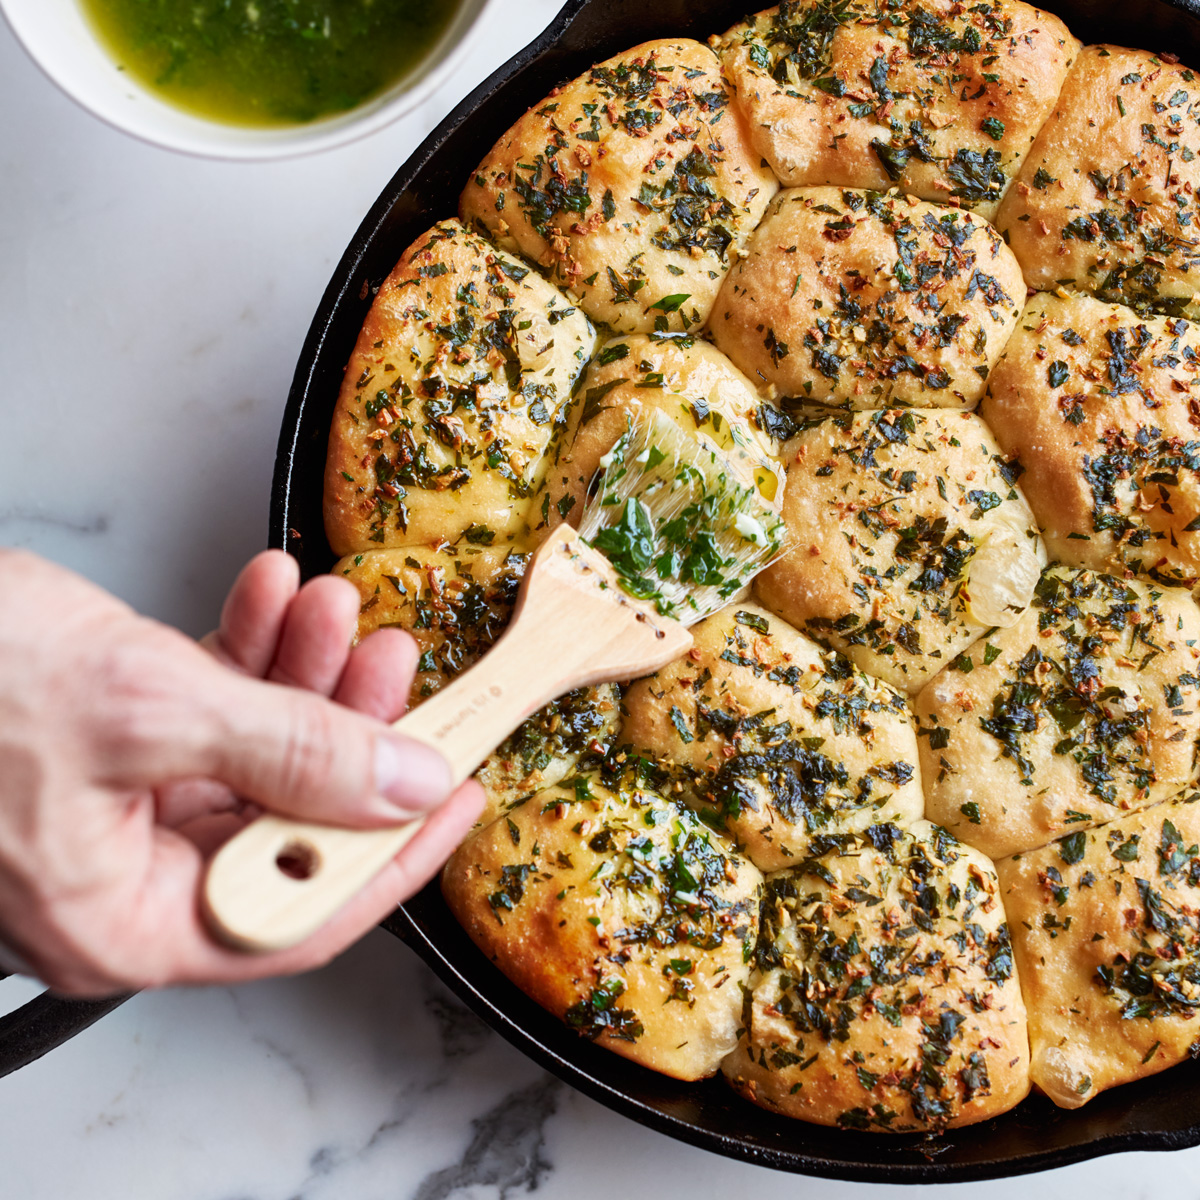 Caraway Rolls with Garlic-Parsley Butter